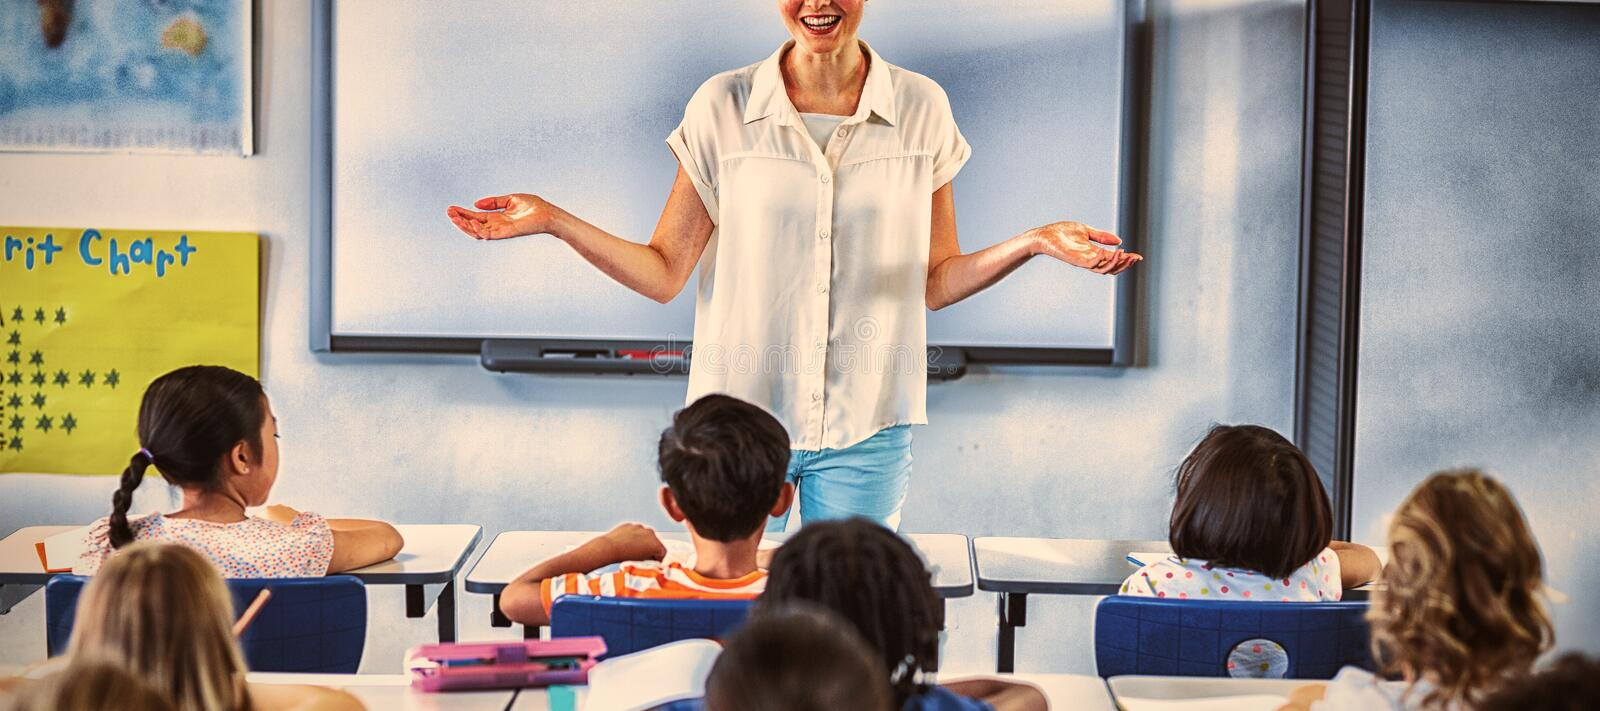 Teacher with arms outstretched in classroom royalty free stock photos